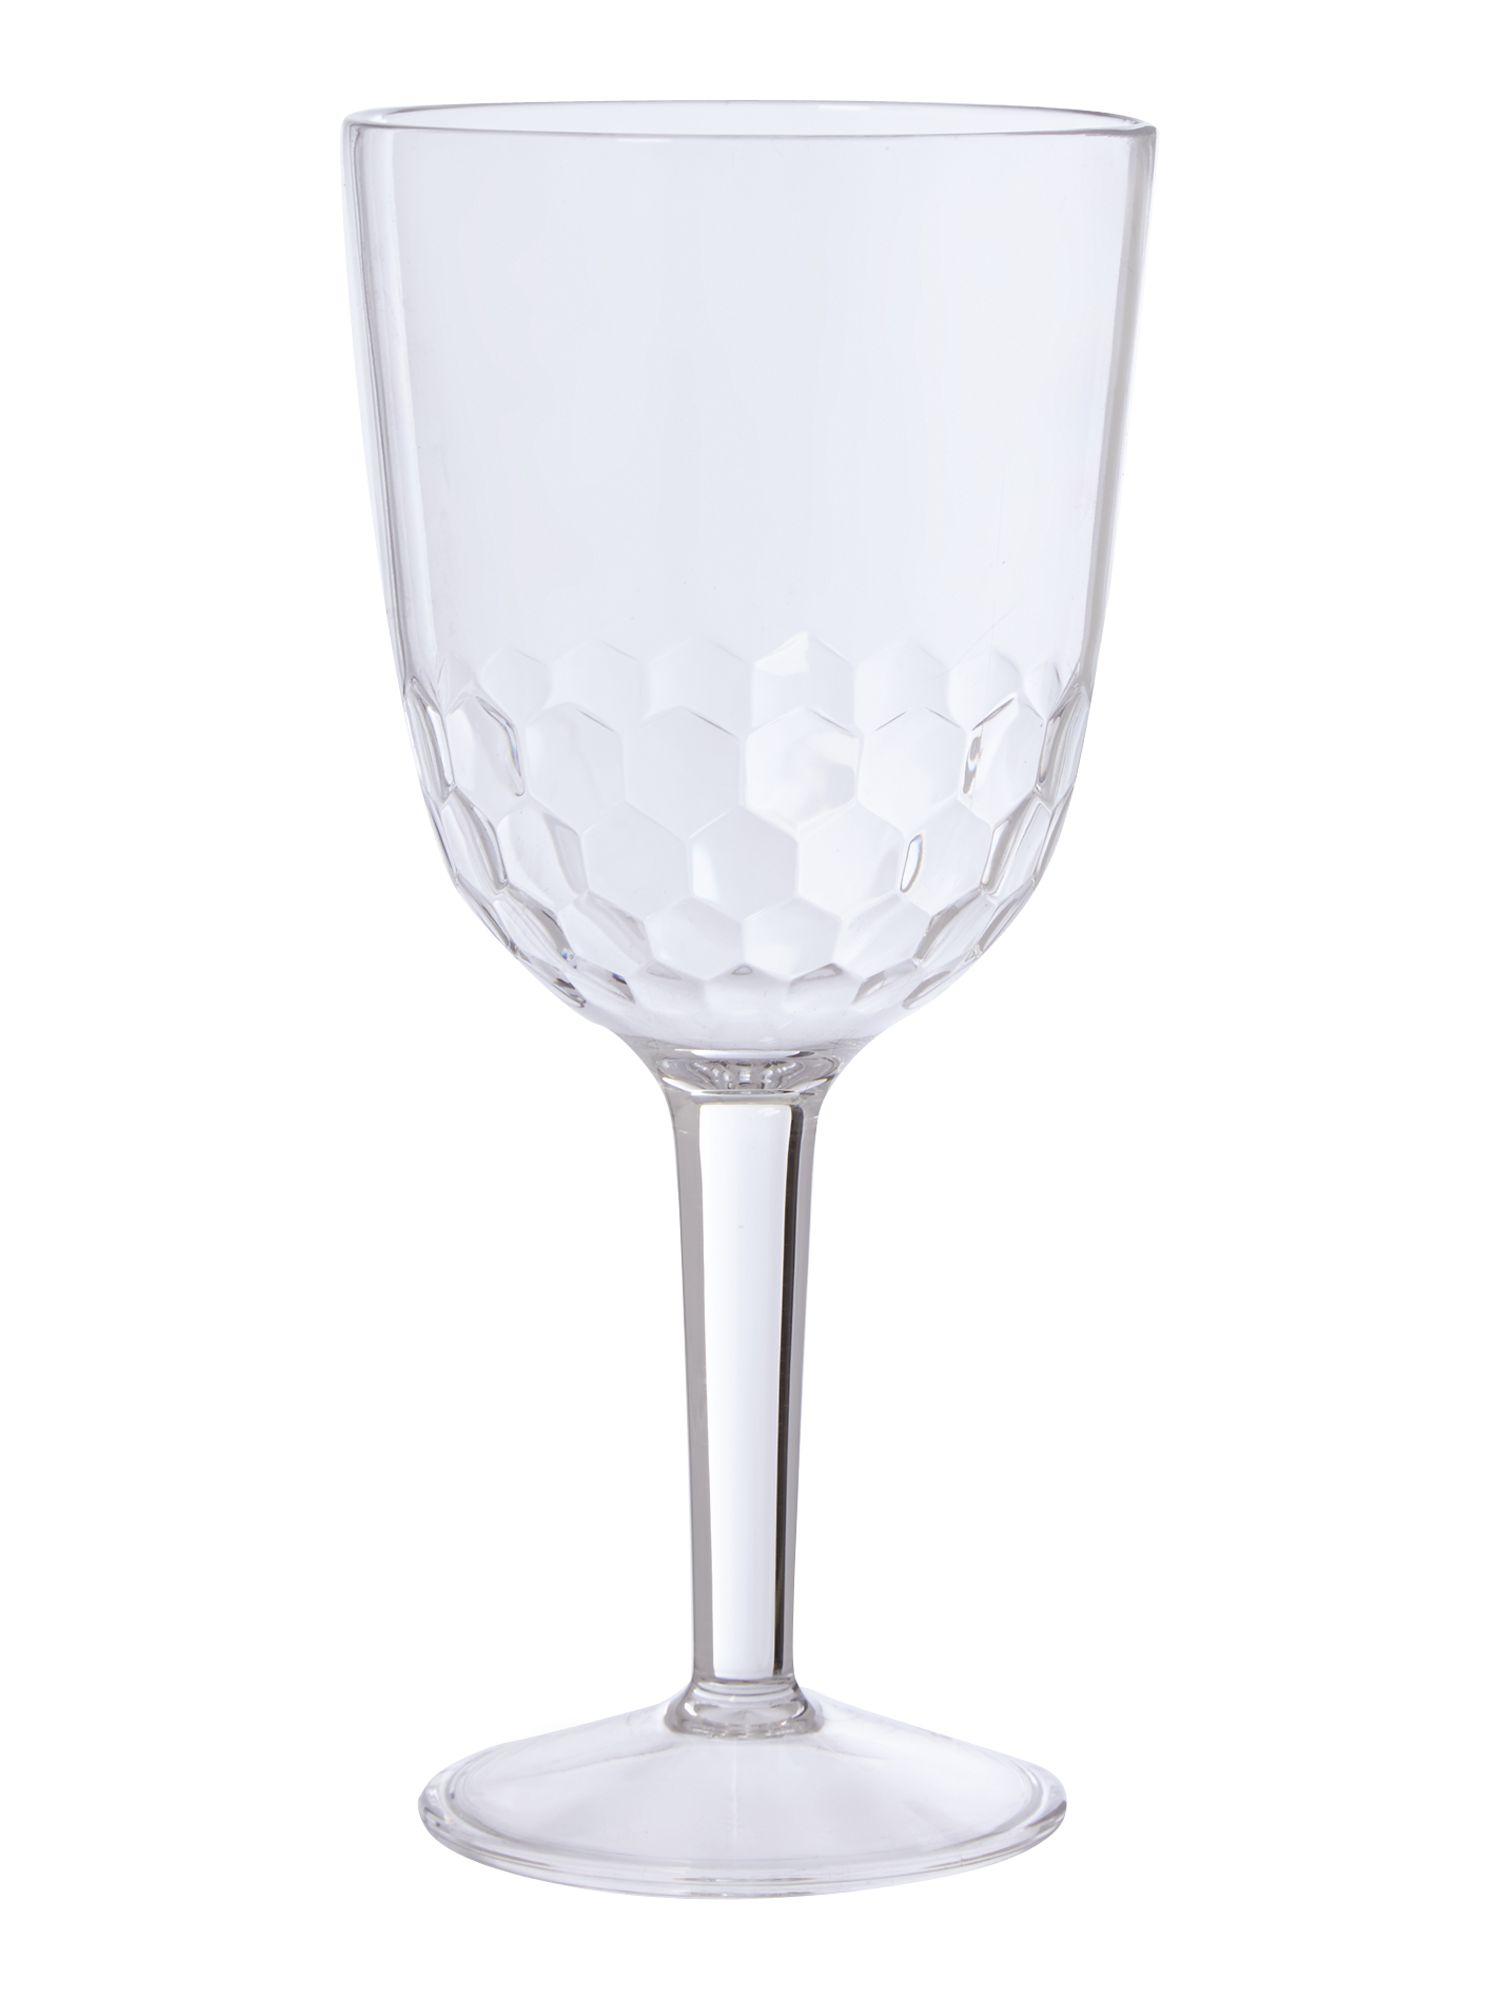 Honeycomb acrylic wine glass